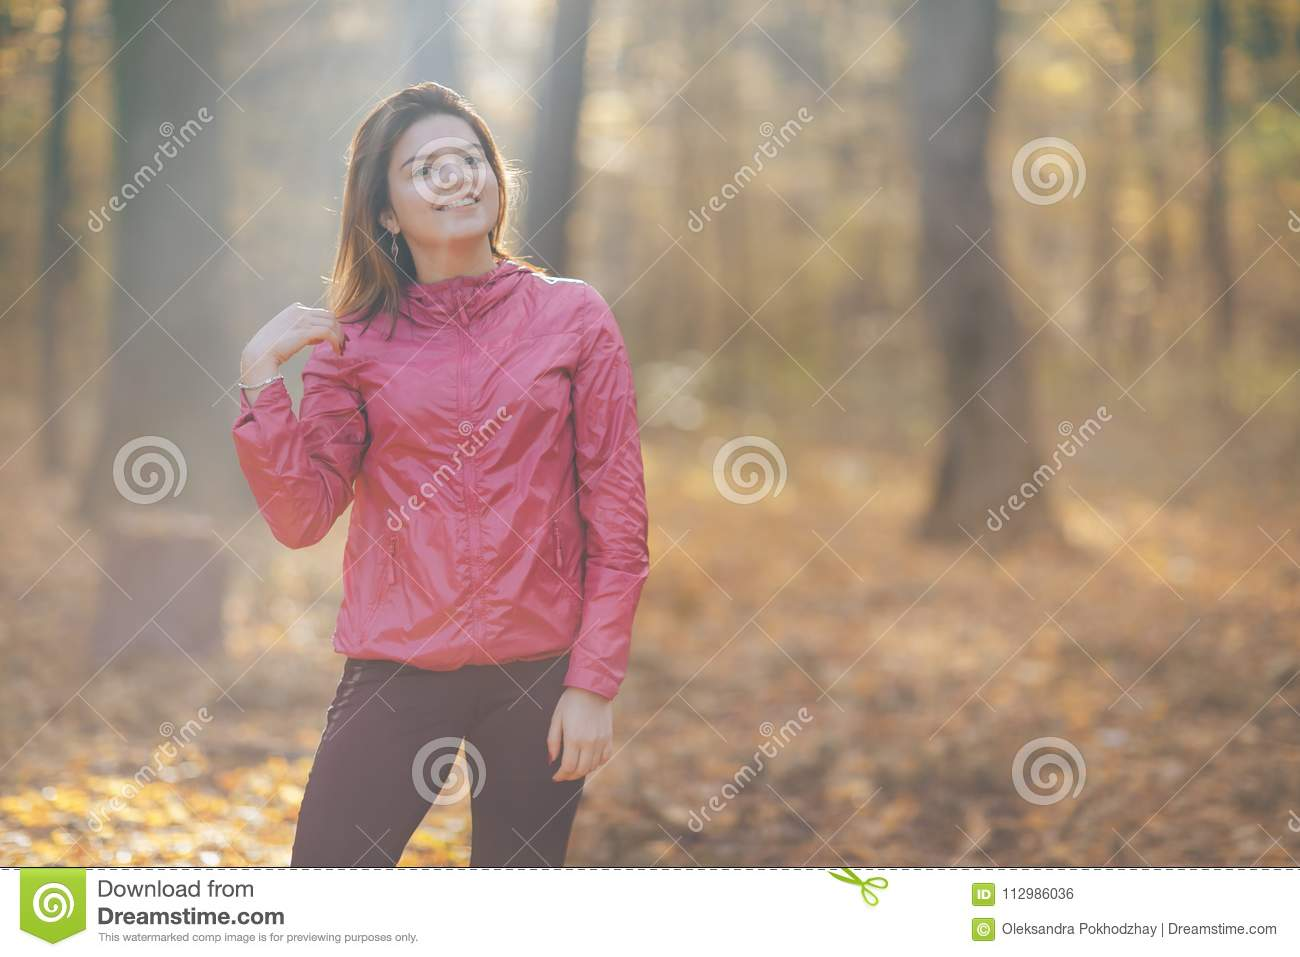 Portrait of a girl who trains in the morning autumn park. Good morning light